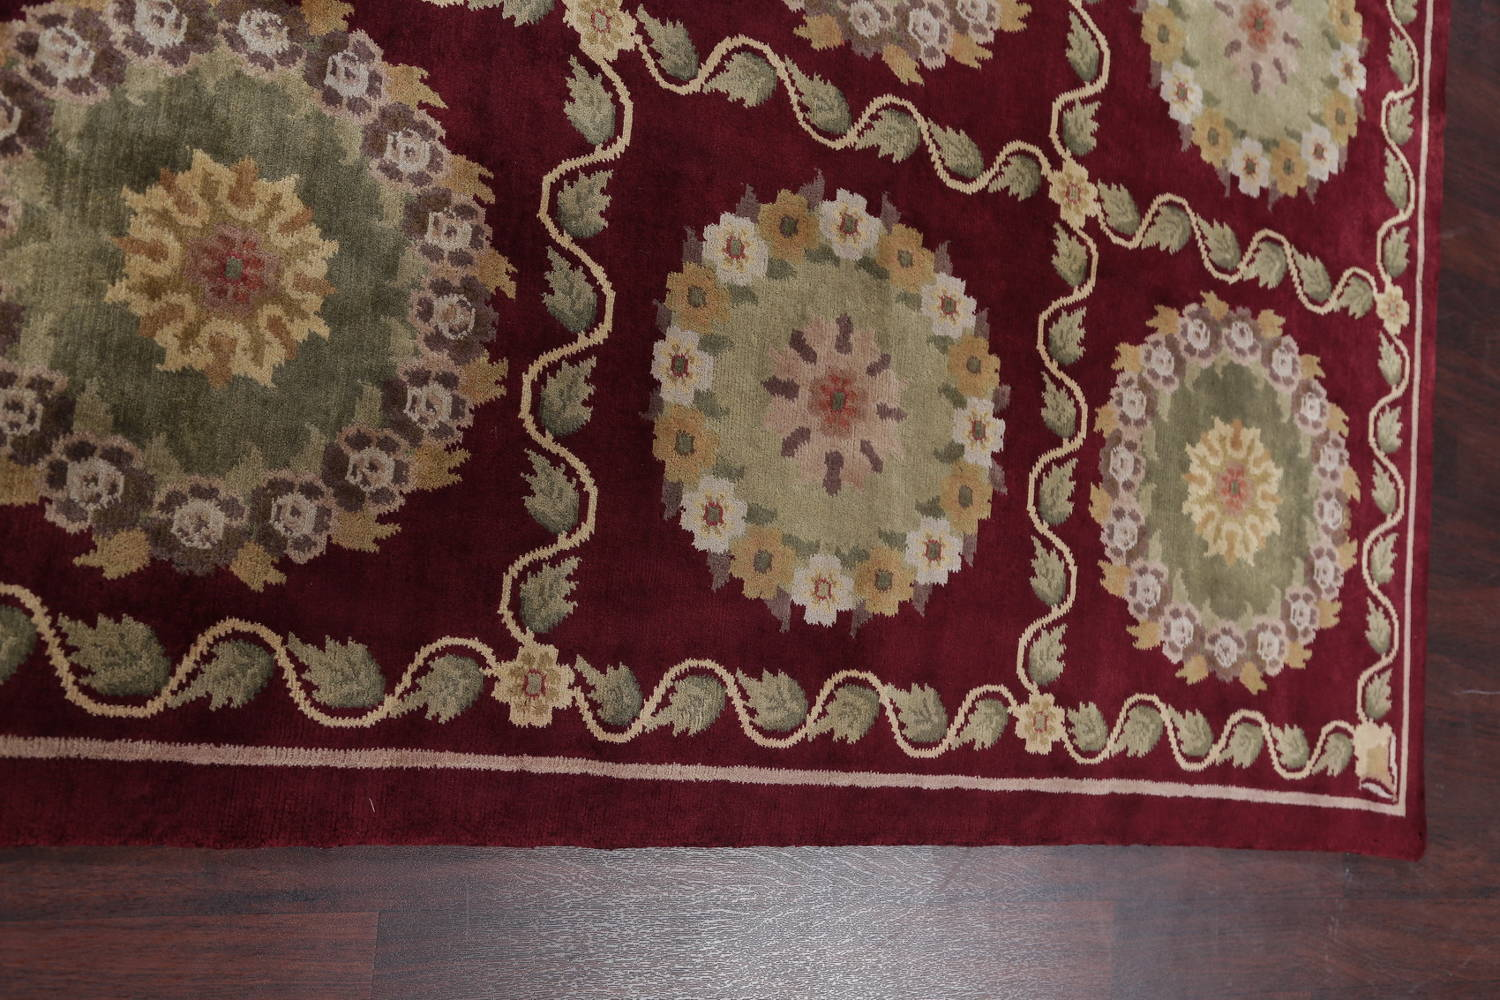 Geometric Red Aubusson Kathmando Oriental Hand-Knotted Area Rug 10x15 image 11